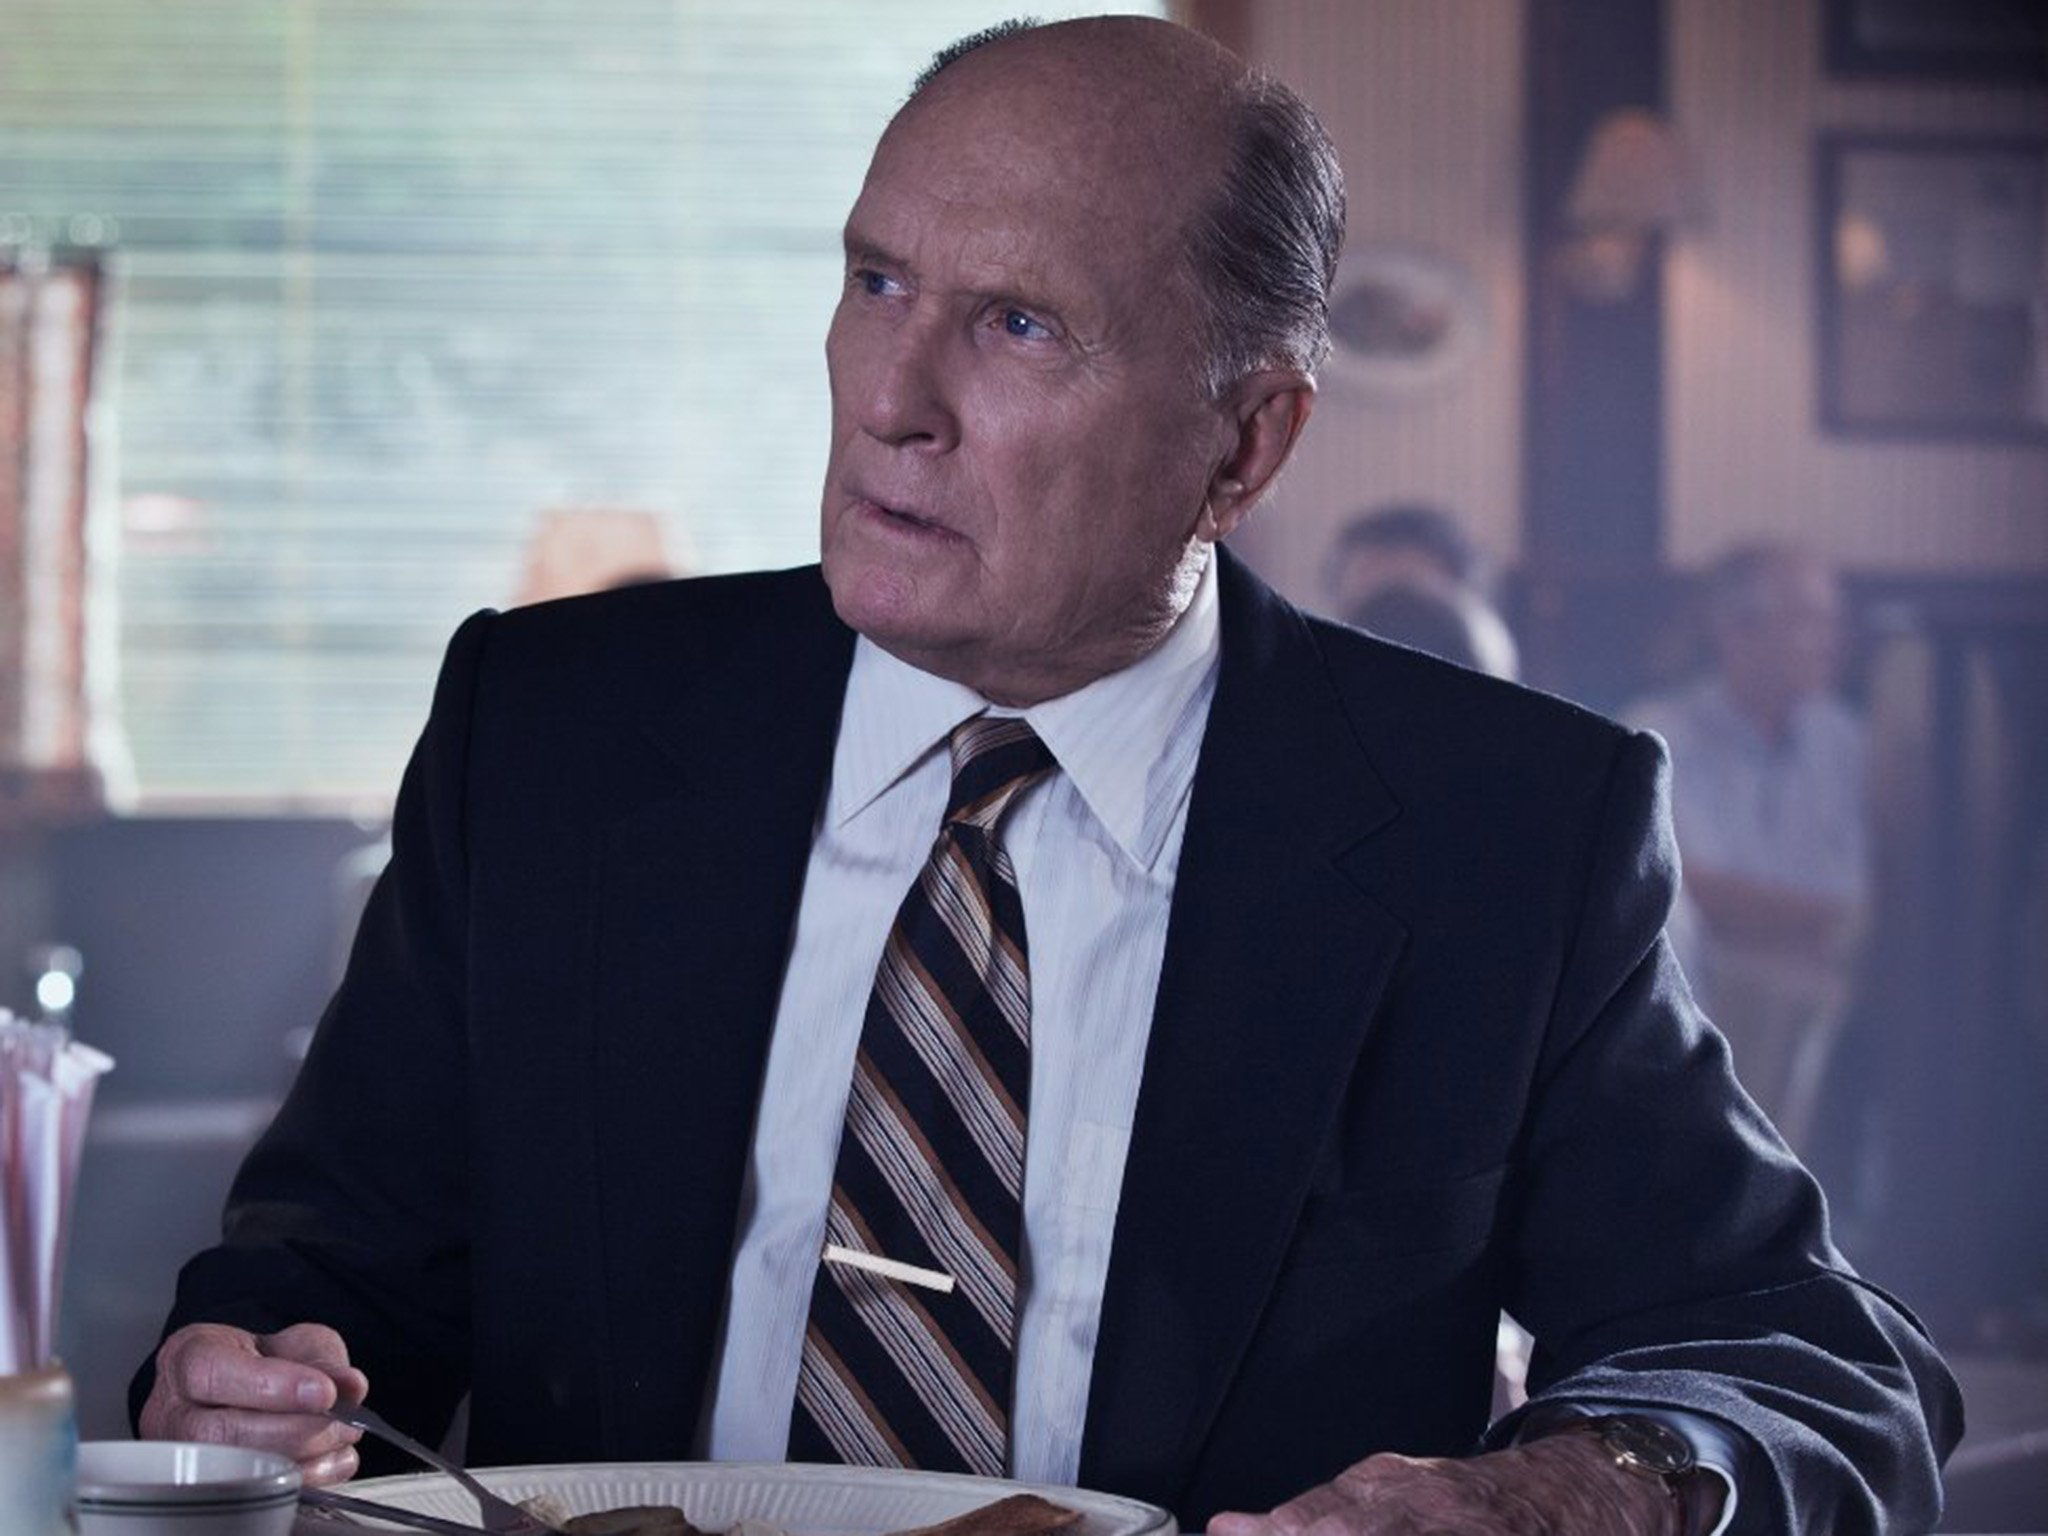 Robert Duvall on The Judge, Brando, and Ally McCoist: Why his policy